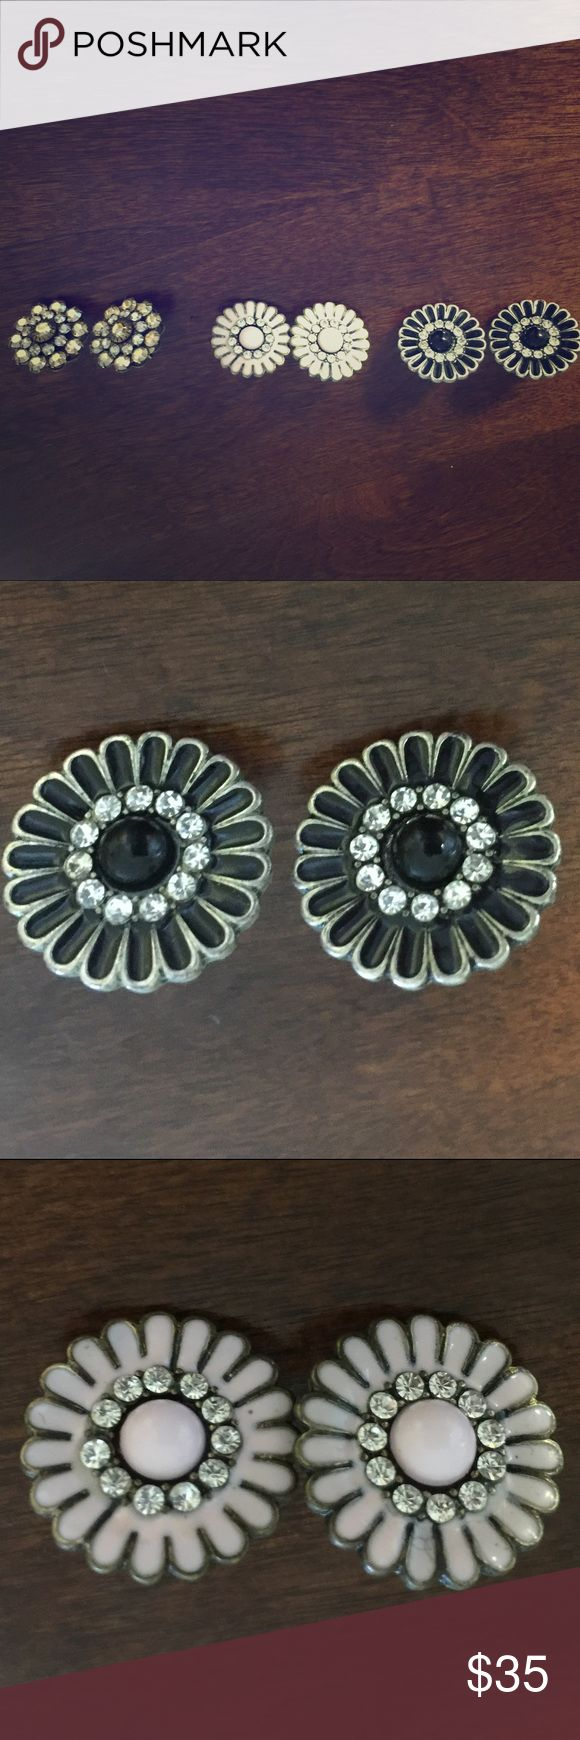 3 Nordstrom Luxe Floral Earrings Gorgeous, super high quality costume jewelry from Nordstrom Nordstrom Jewelry Earrings